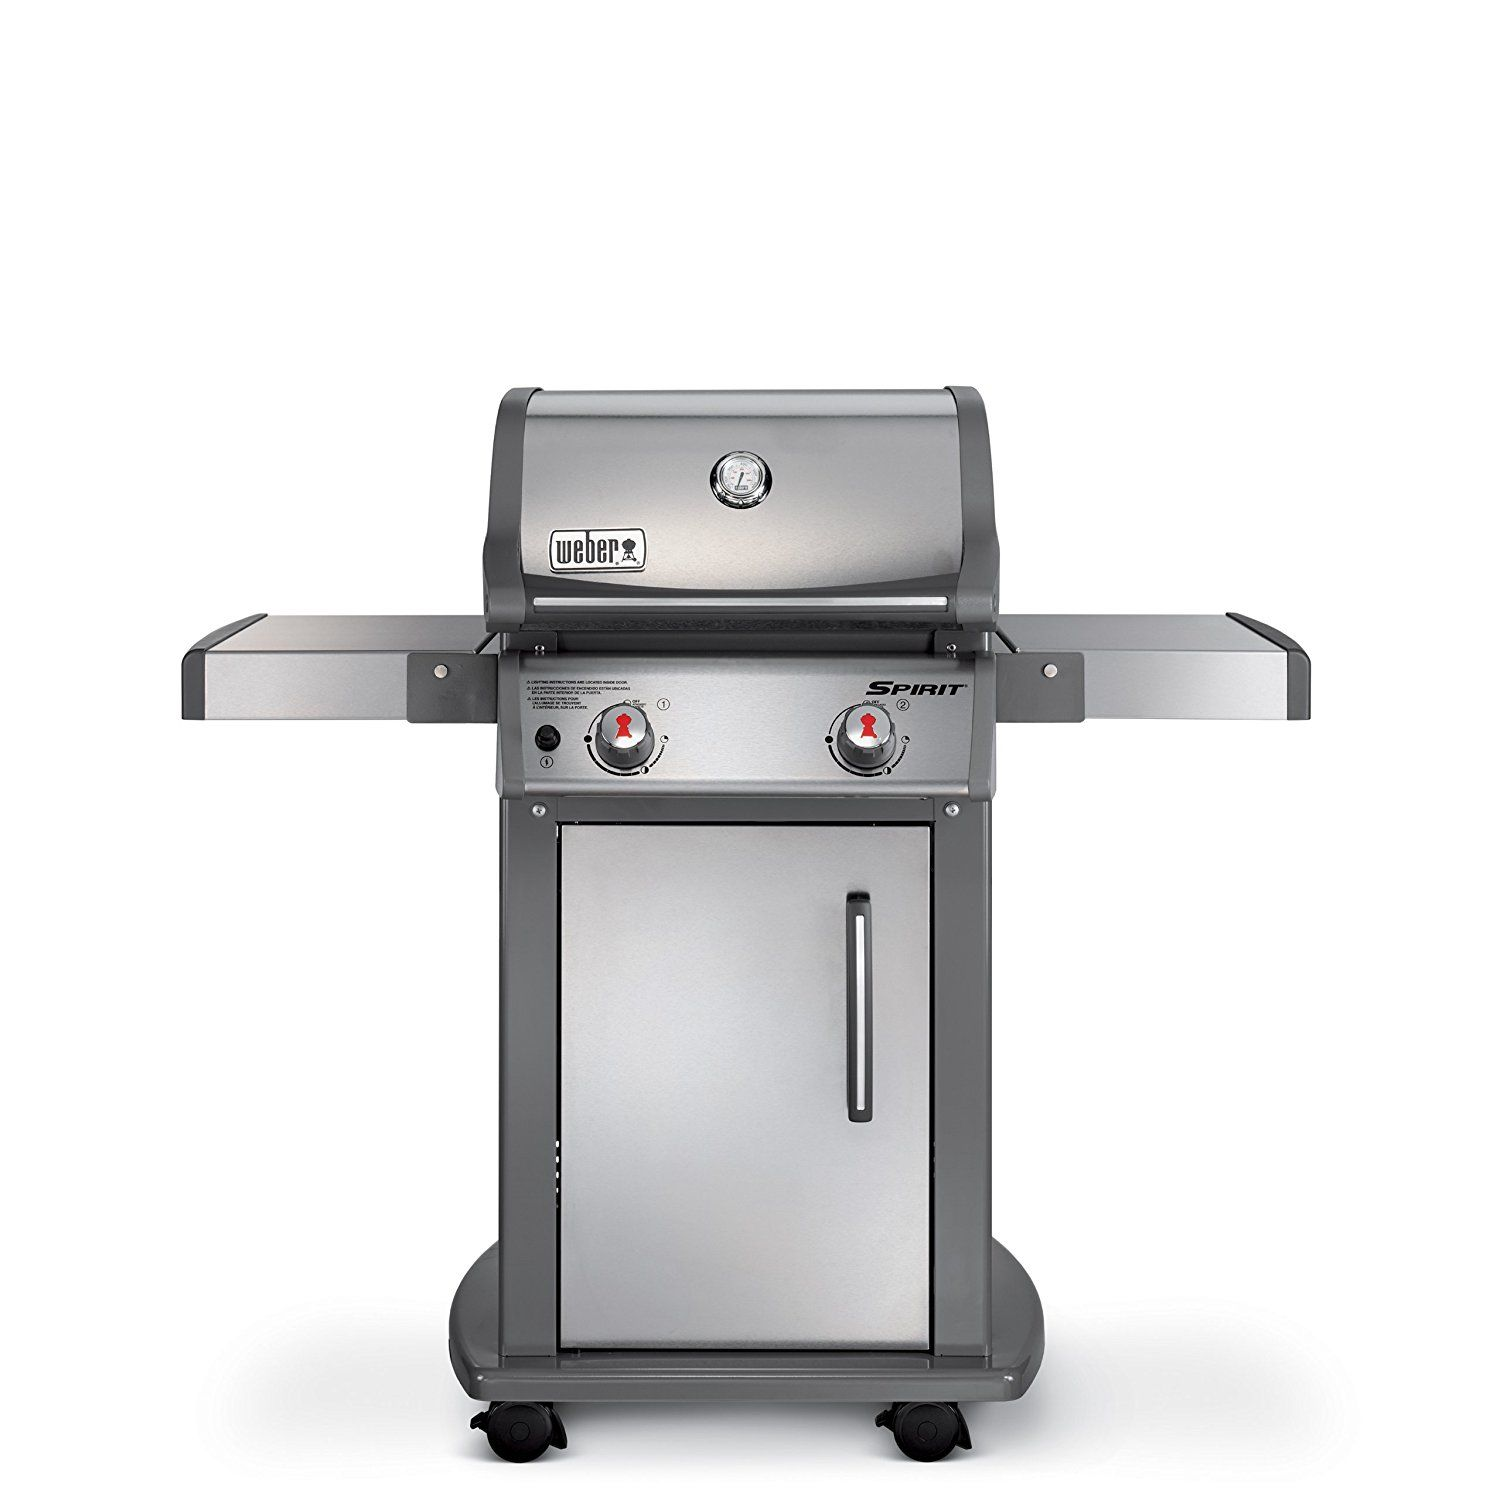 Weber 47100001 Spirit S210 Natural Gas Grill Stainless Steel Natural Gas Grill Gas Grill Propane Gas Grill